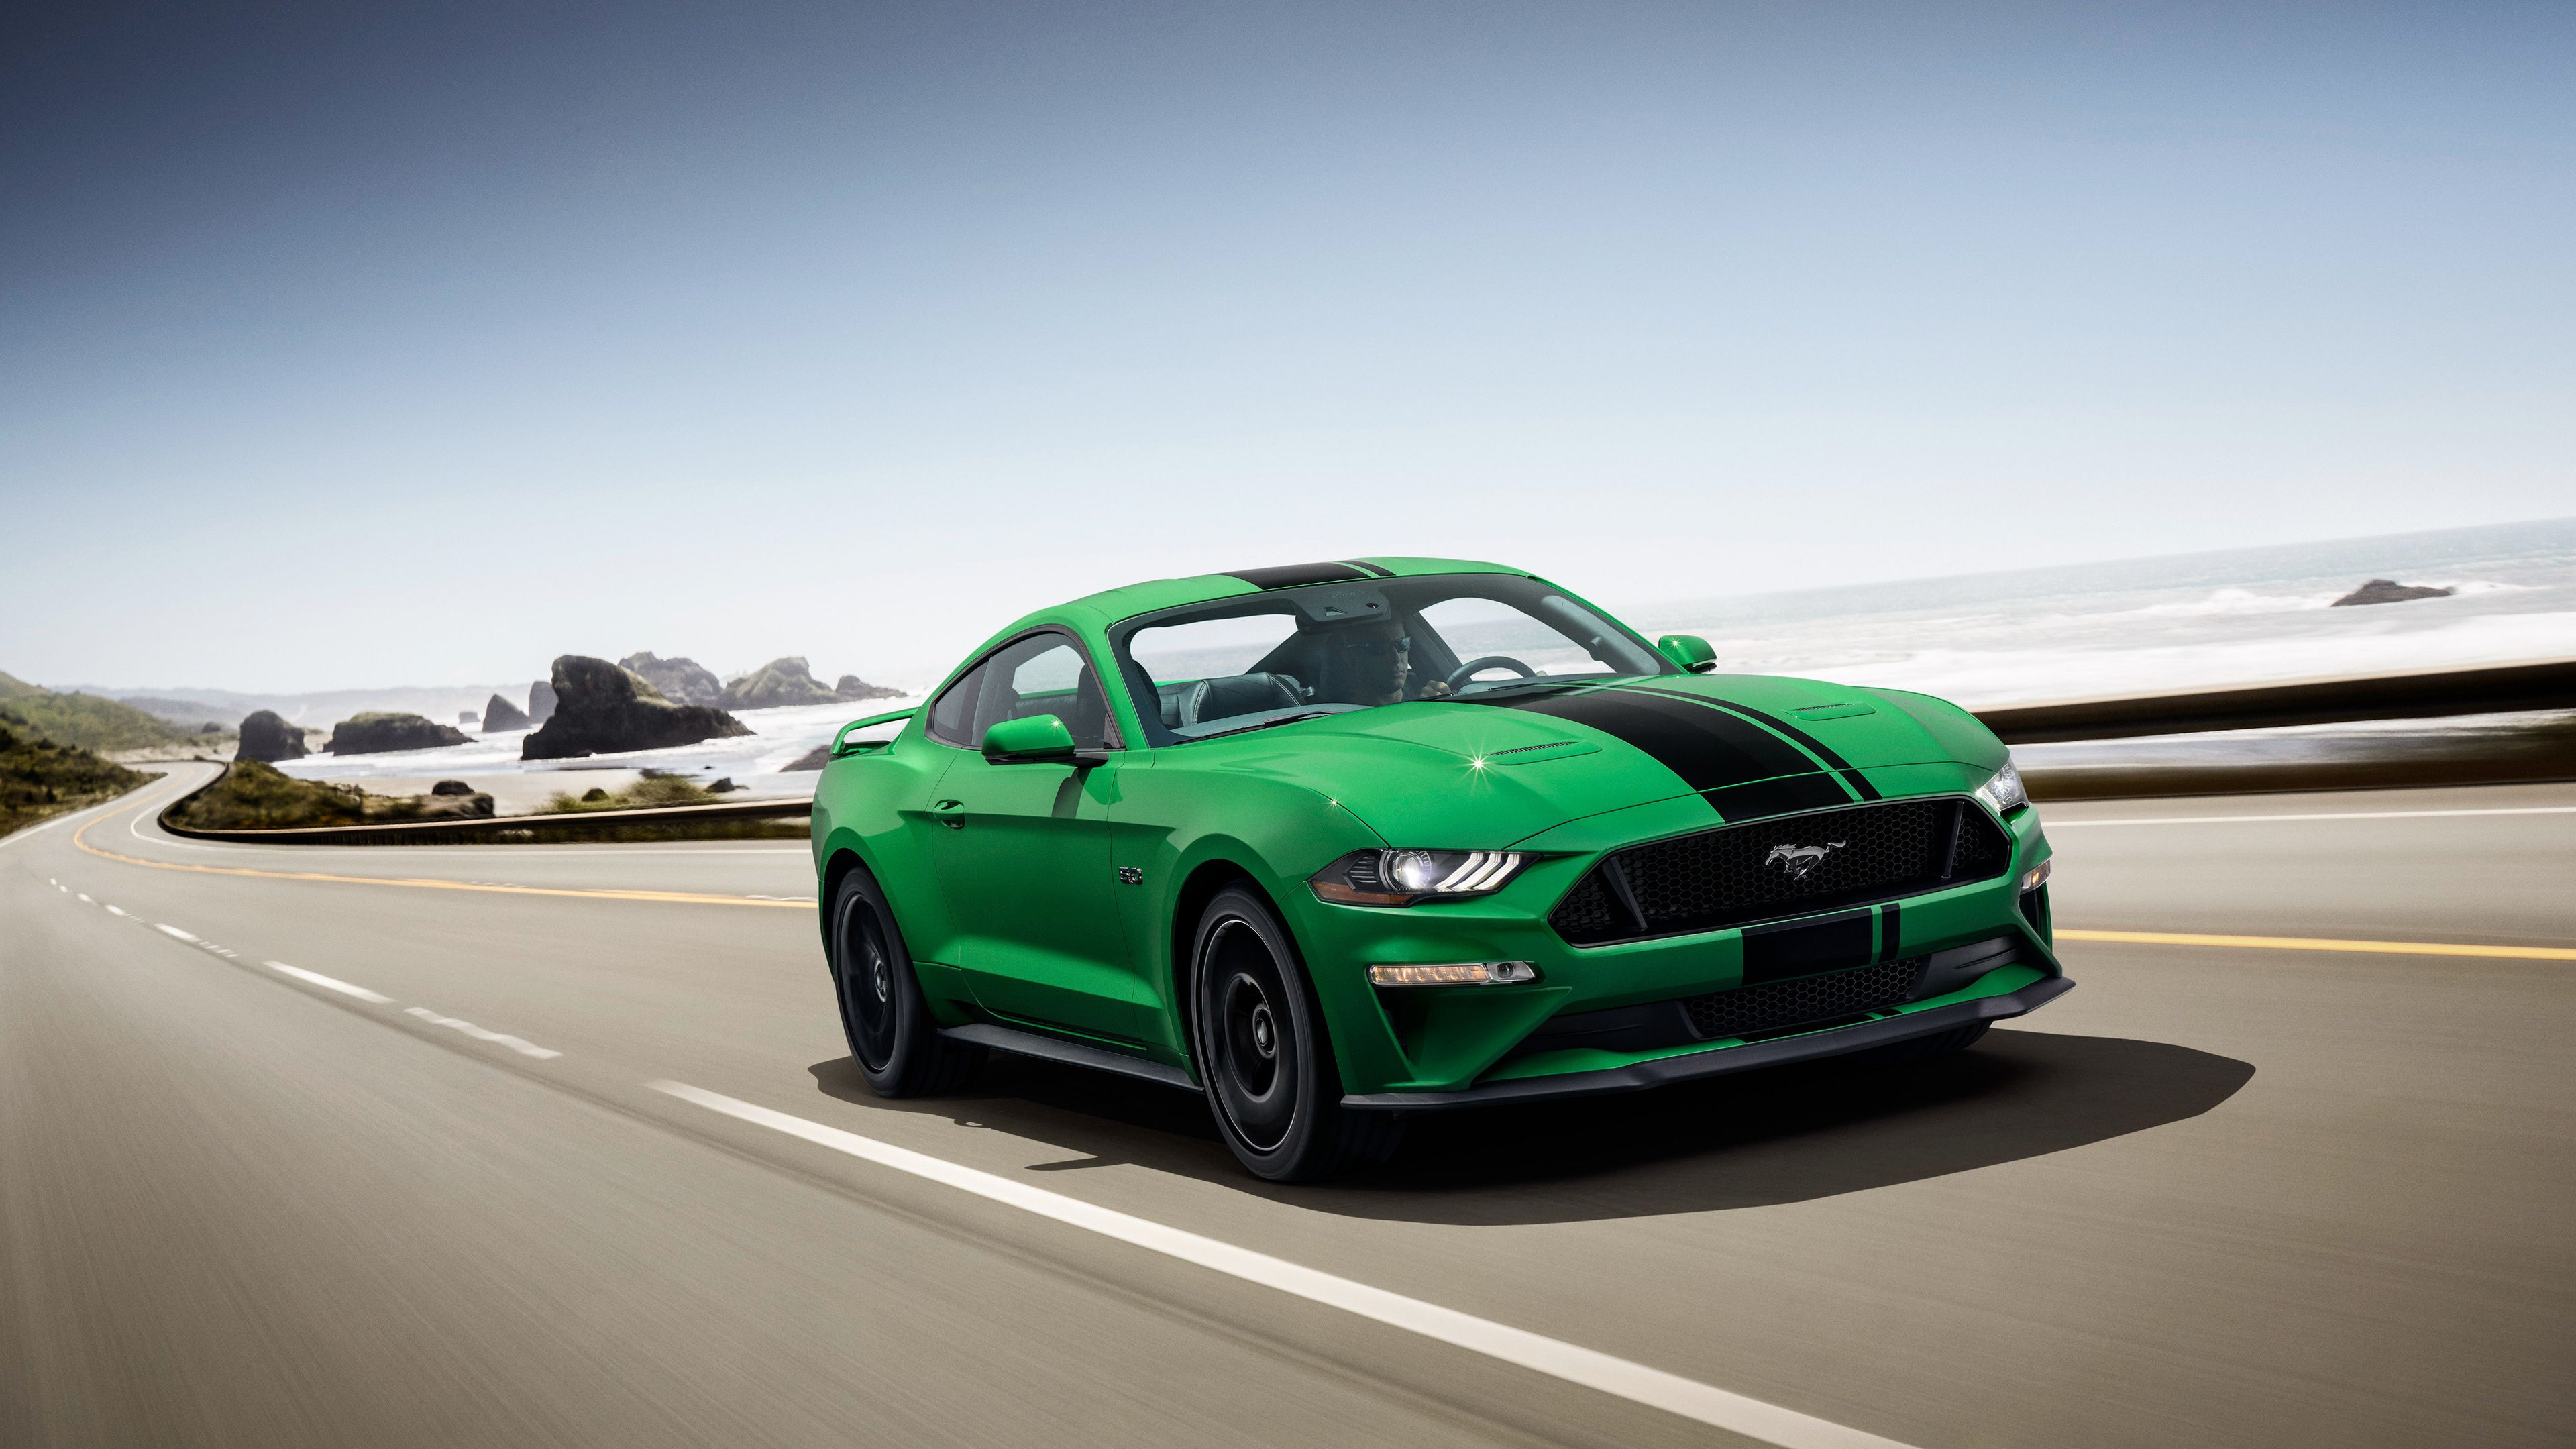 The hd wallpaper picture (high resolution mustang muscle car) has been downloaded. Muscle Car Ford Mustang Wallpaper 4k